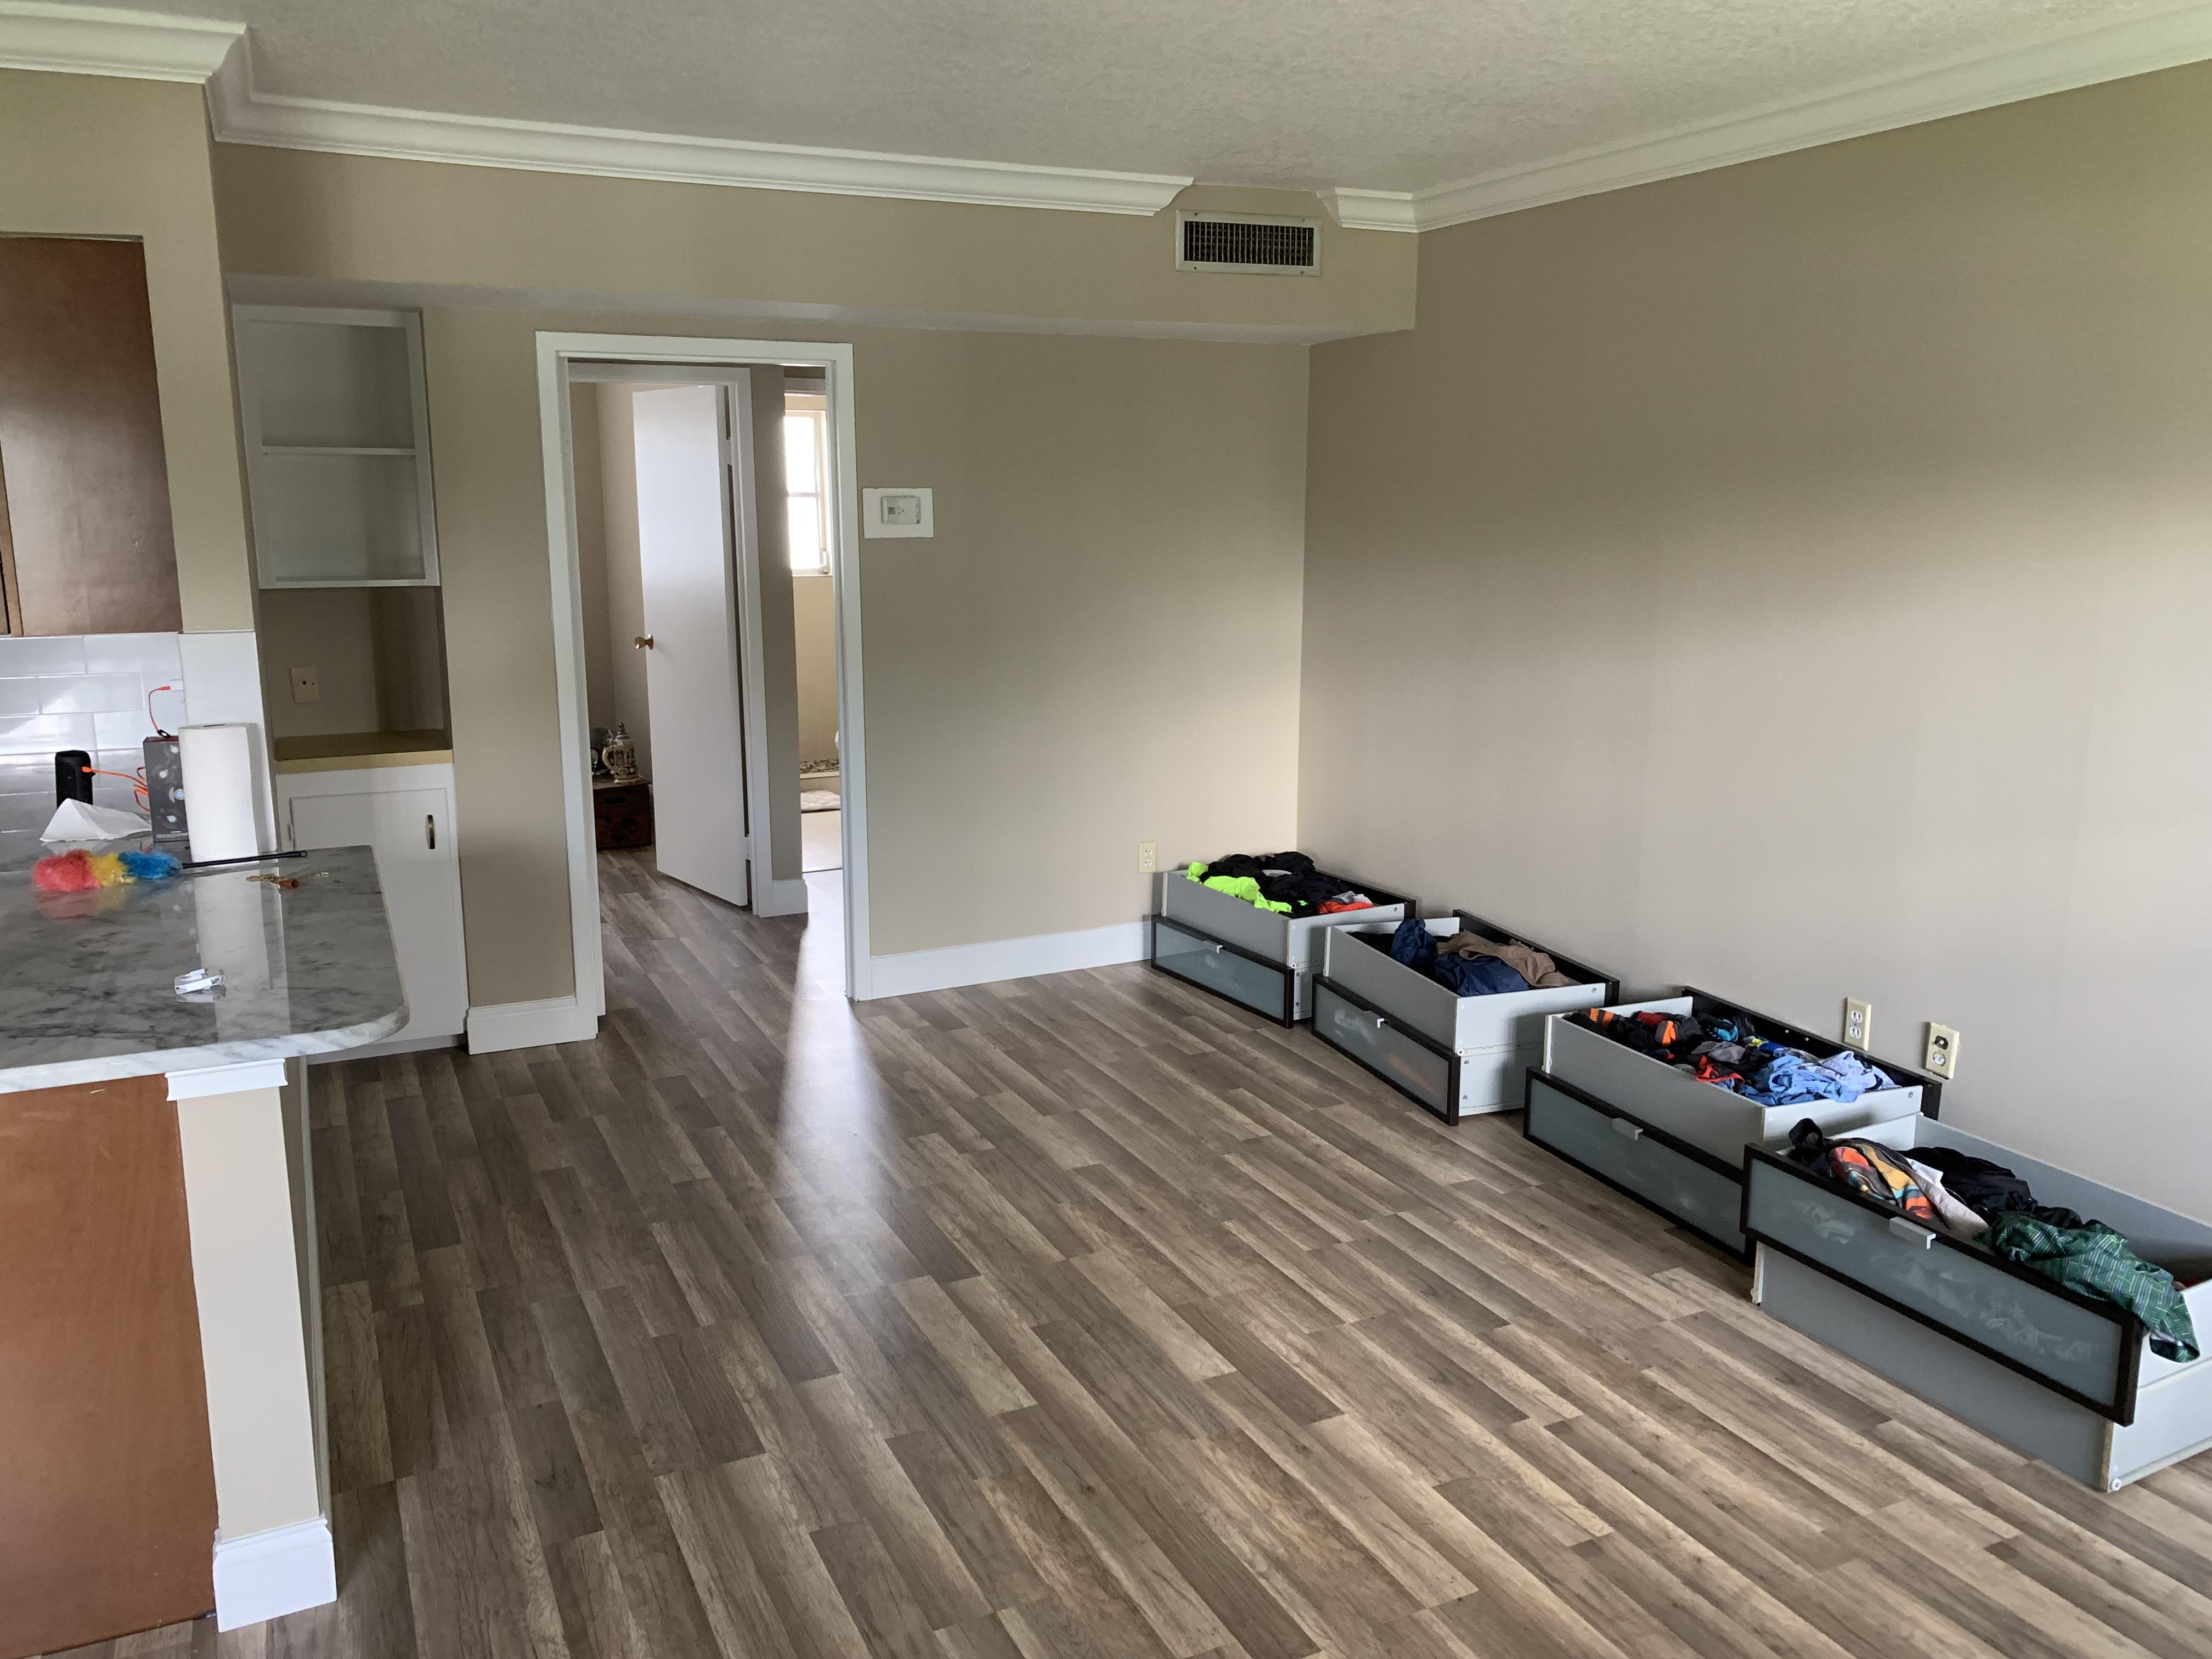 Starting Brand New Open To Suggestions For How To Set Up regarding How To Set Up A Living Room